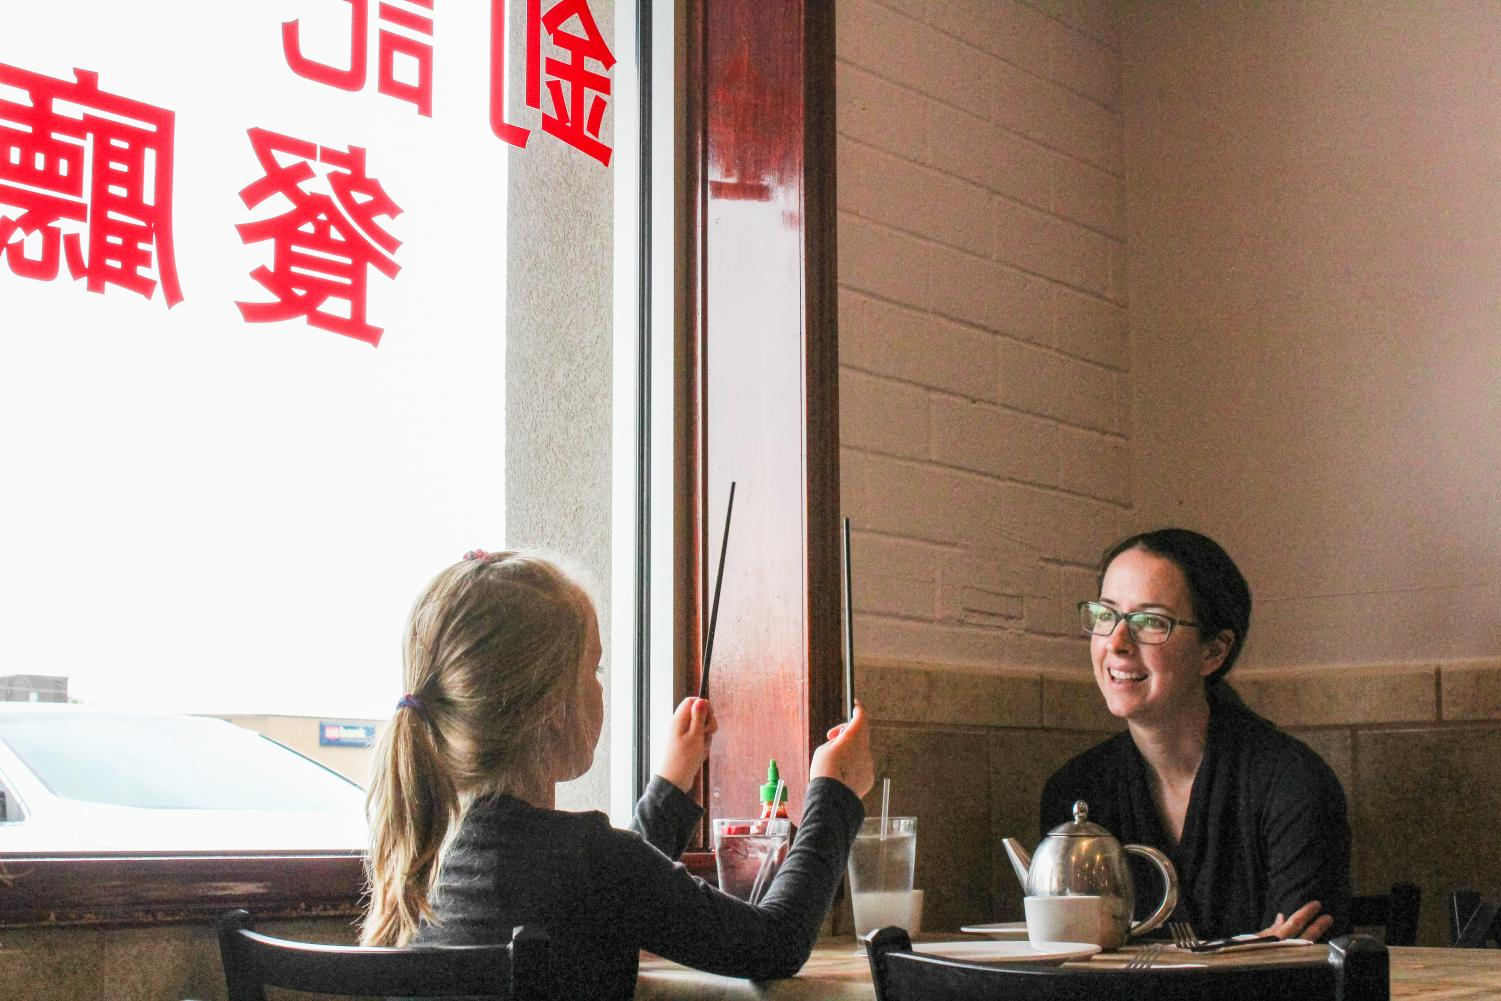 A young girl plays with chopsticks to entertain her mother as they wait for their order.